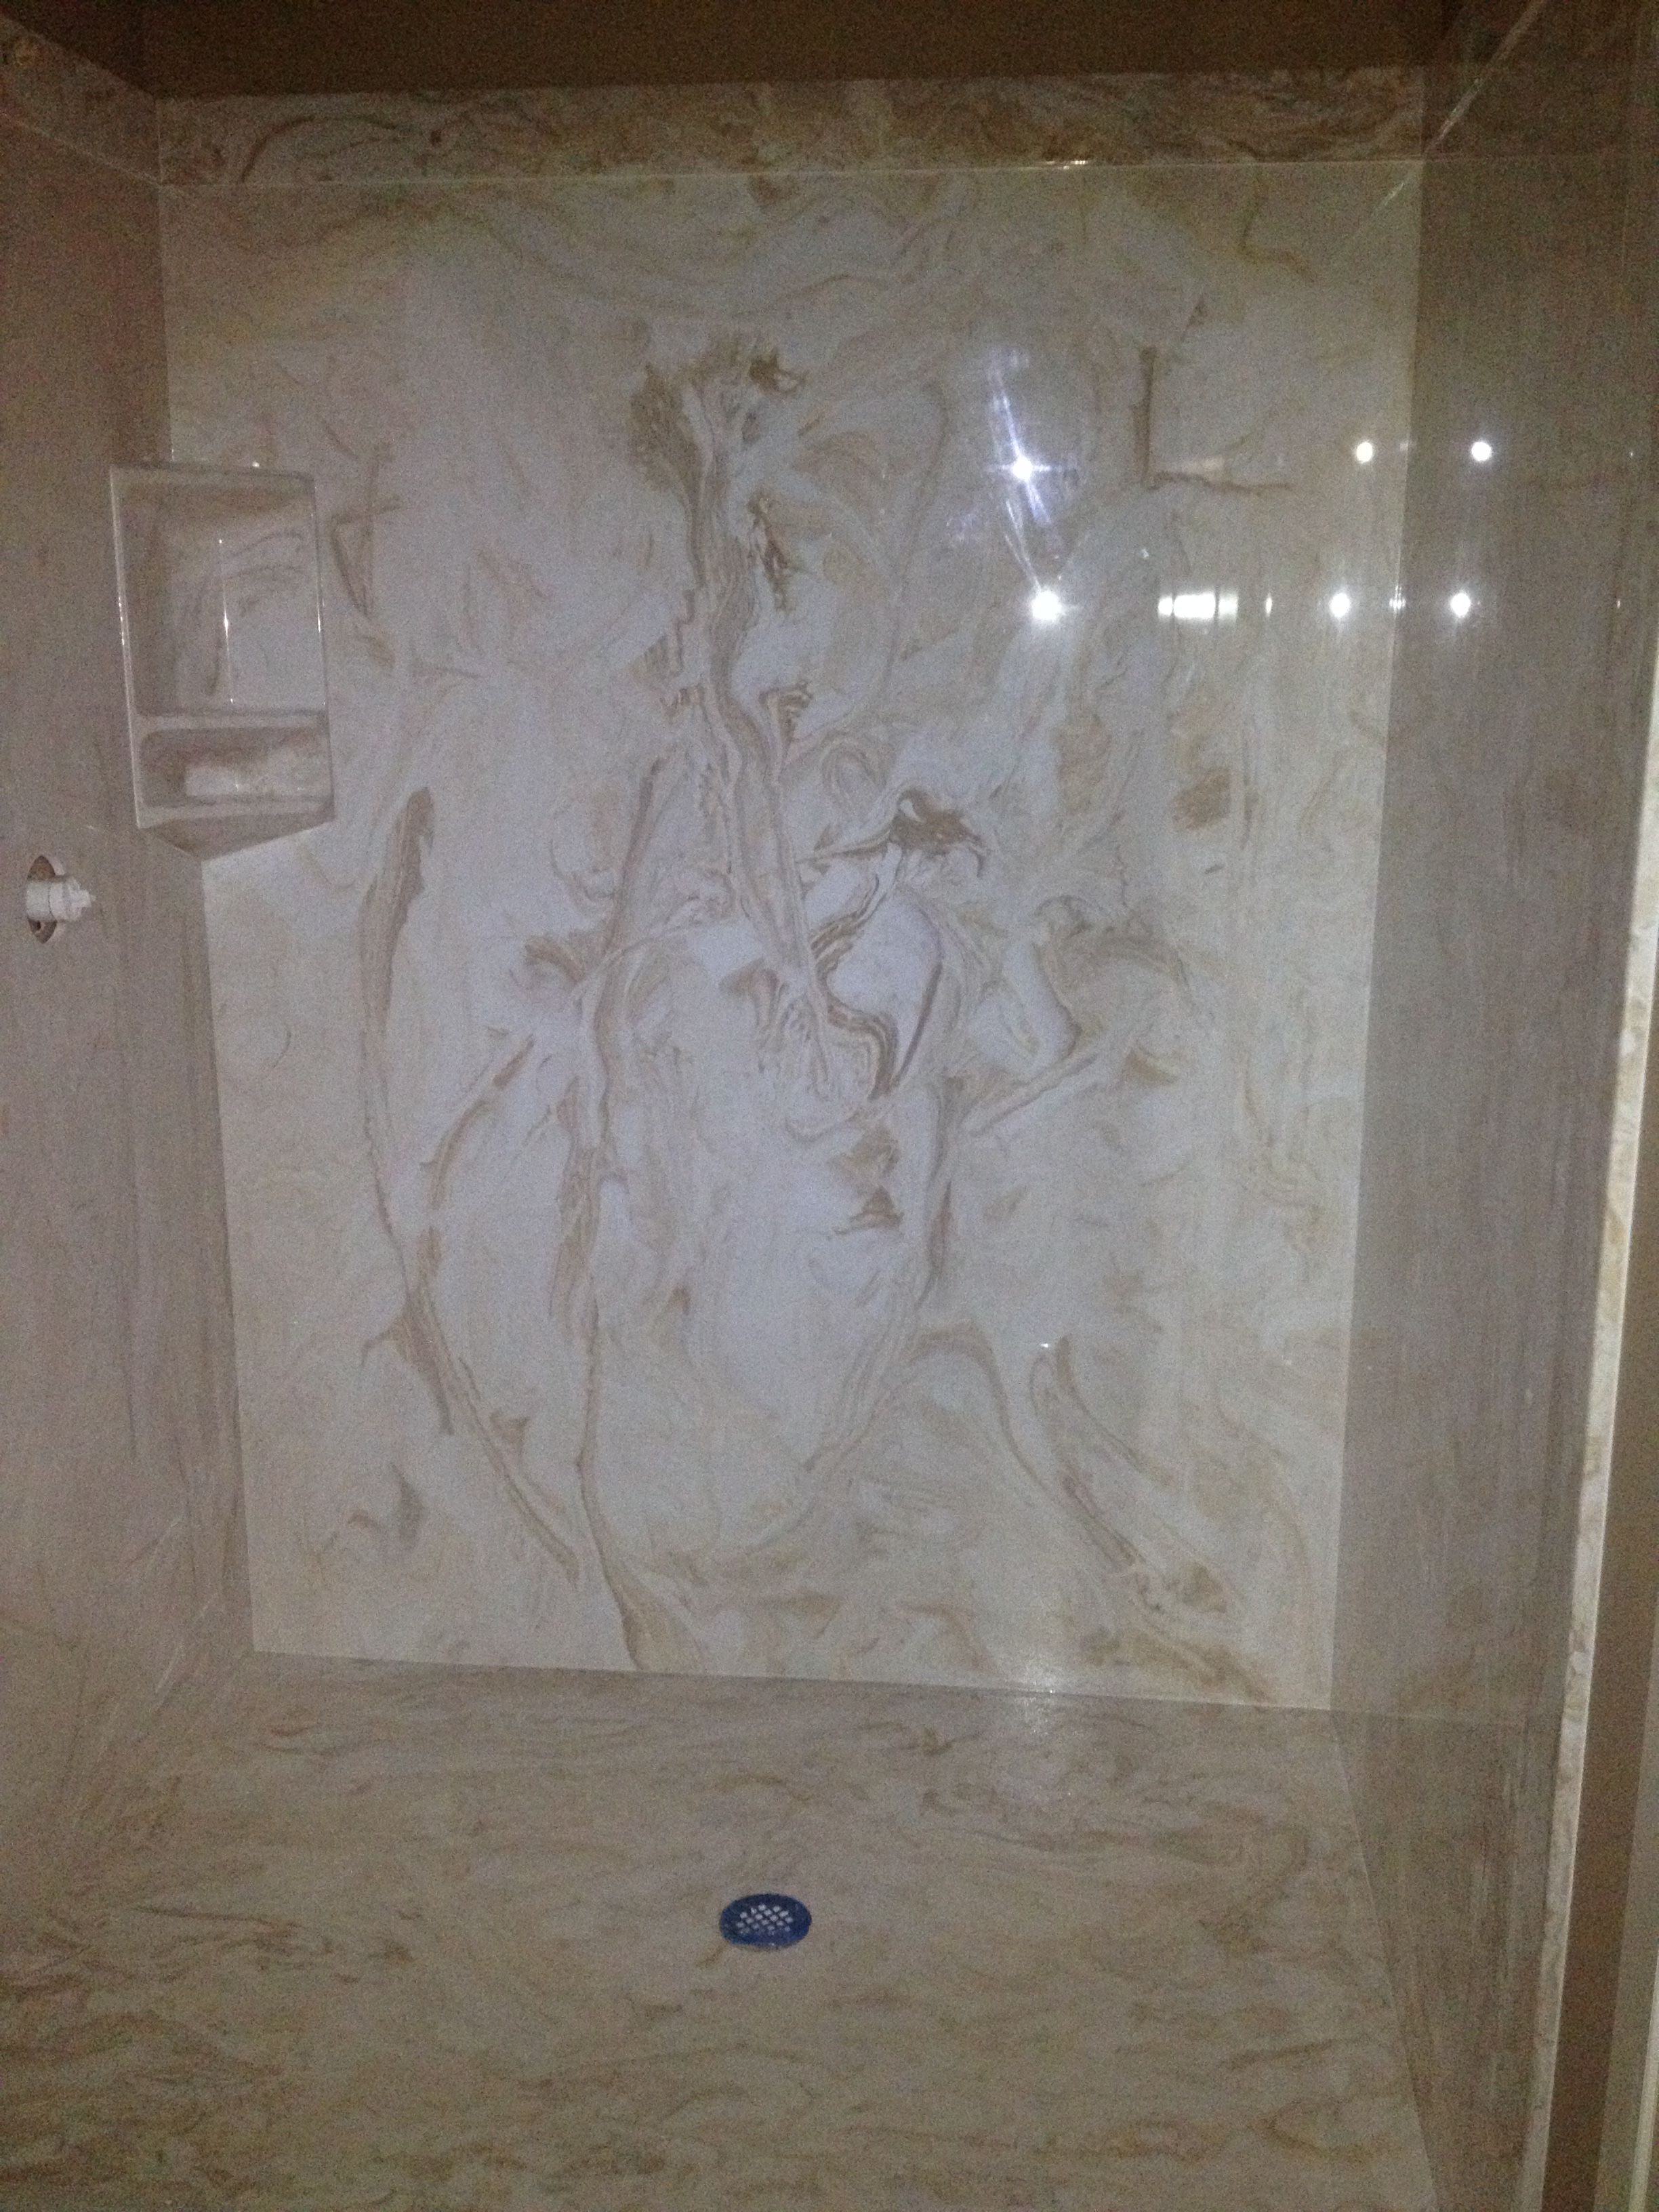 Cultured Marble Shower Color Is Mexican Sand Cultured Marble Shower Walls Marble Showers Cultured Marble Shower